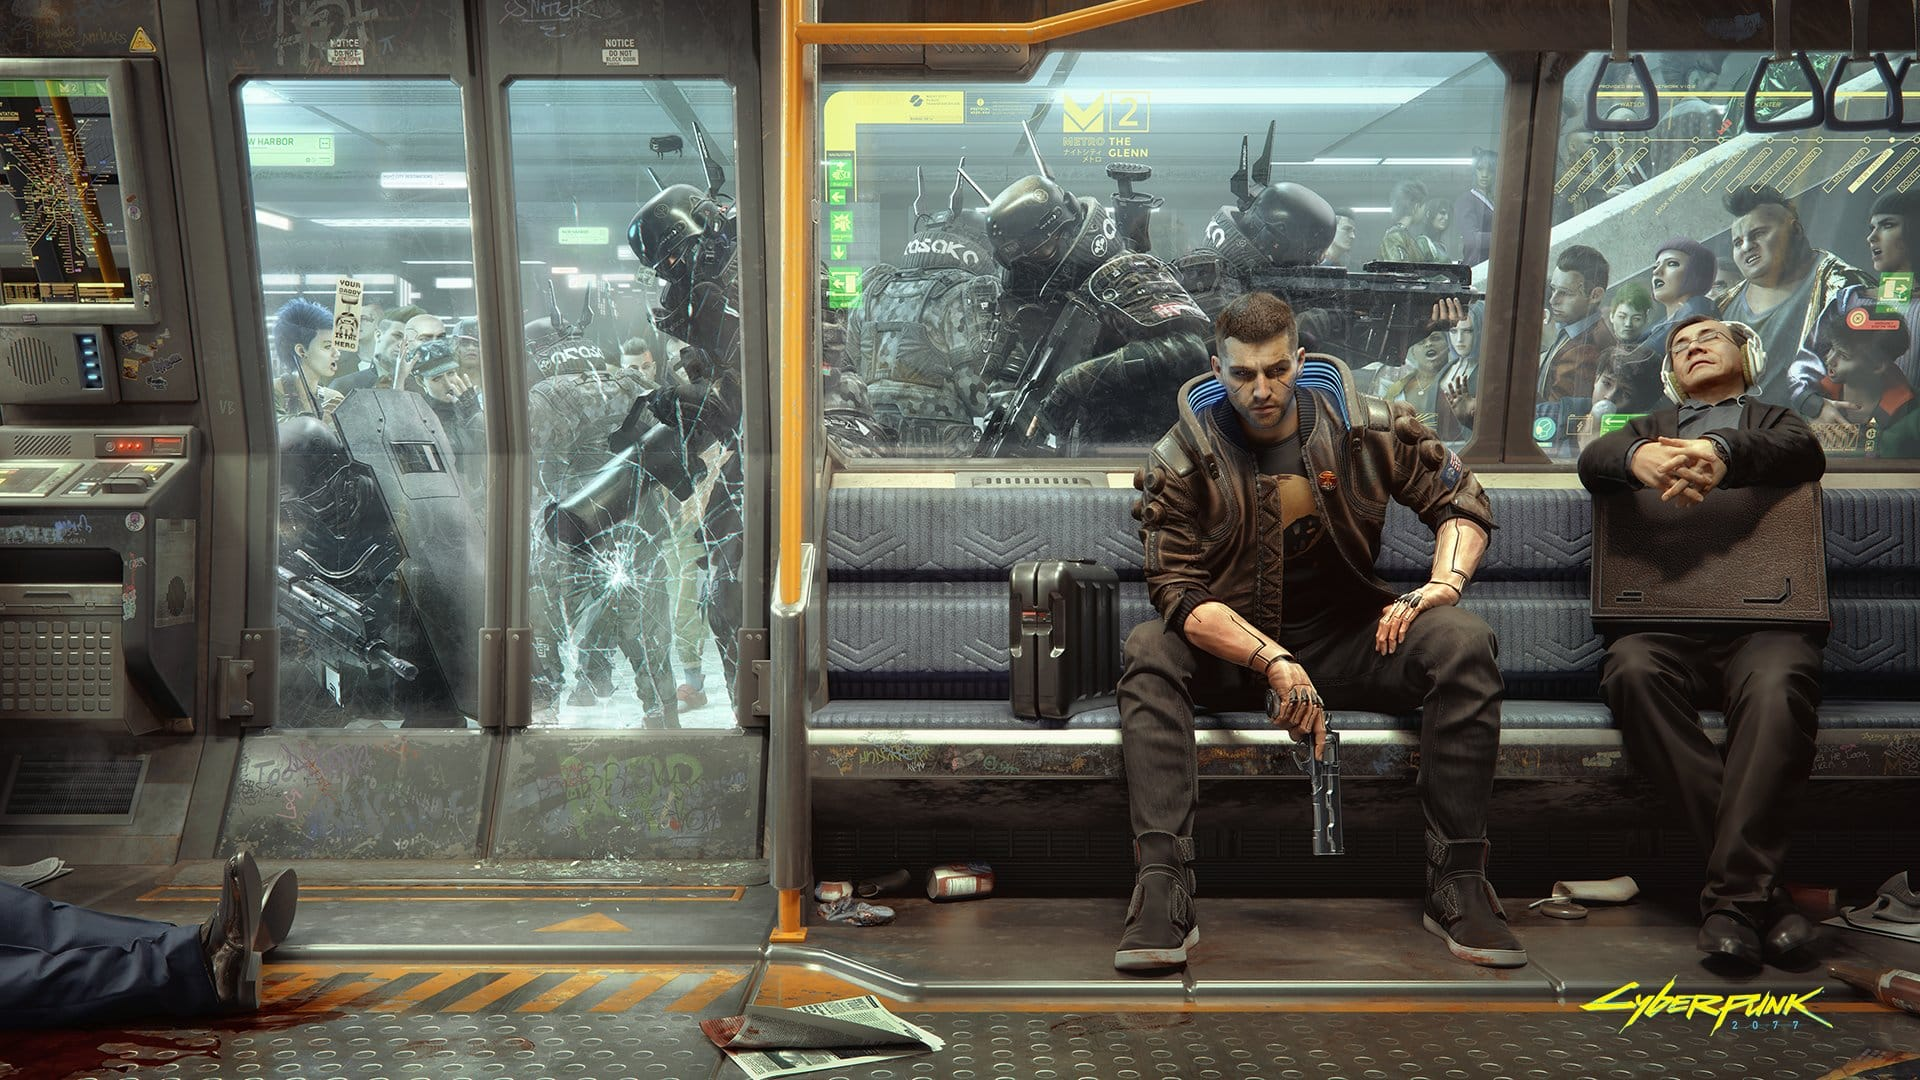 New Cyberpunk 2077 Wallpaper Shows How Metro Commuting Works Gadgetsngaming